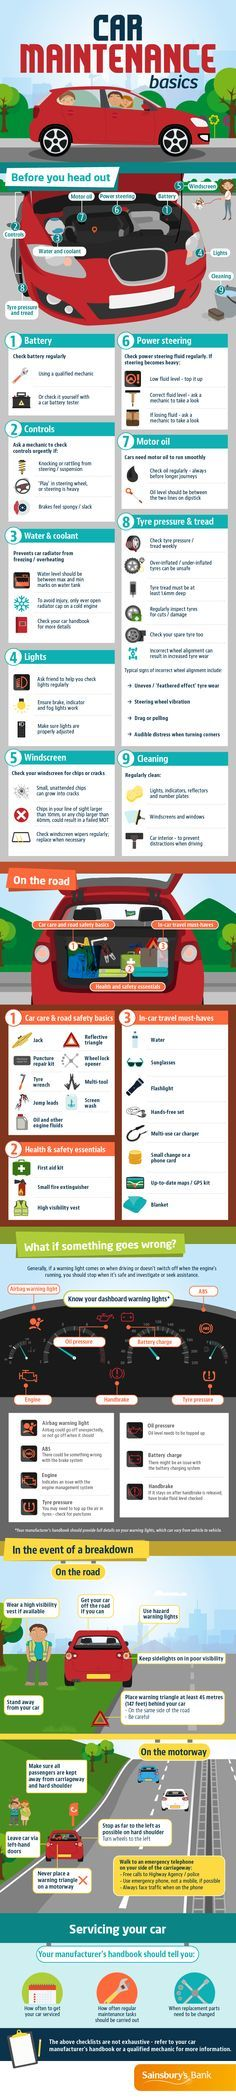 A Visual Guide to Car Maintenance #infographic #Cars #Transportation